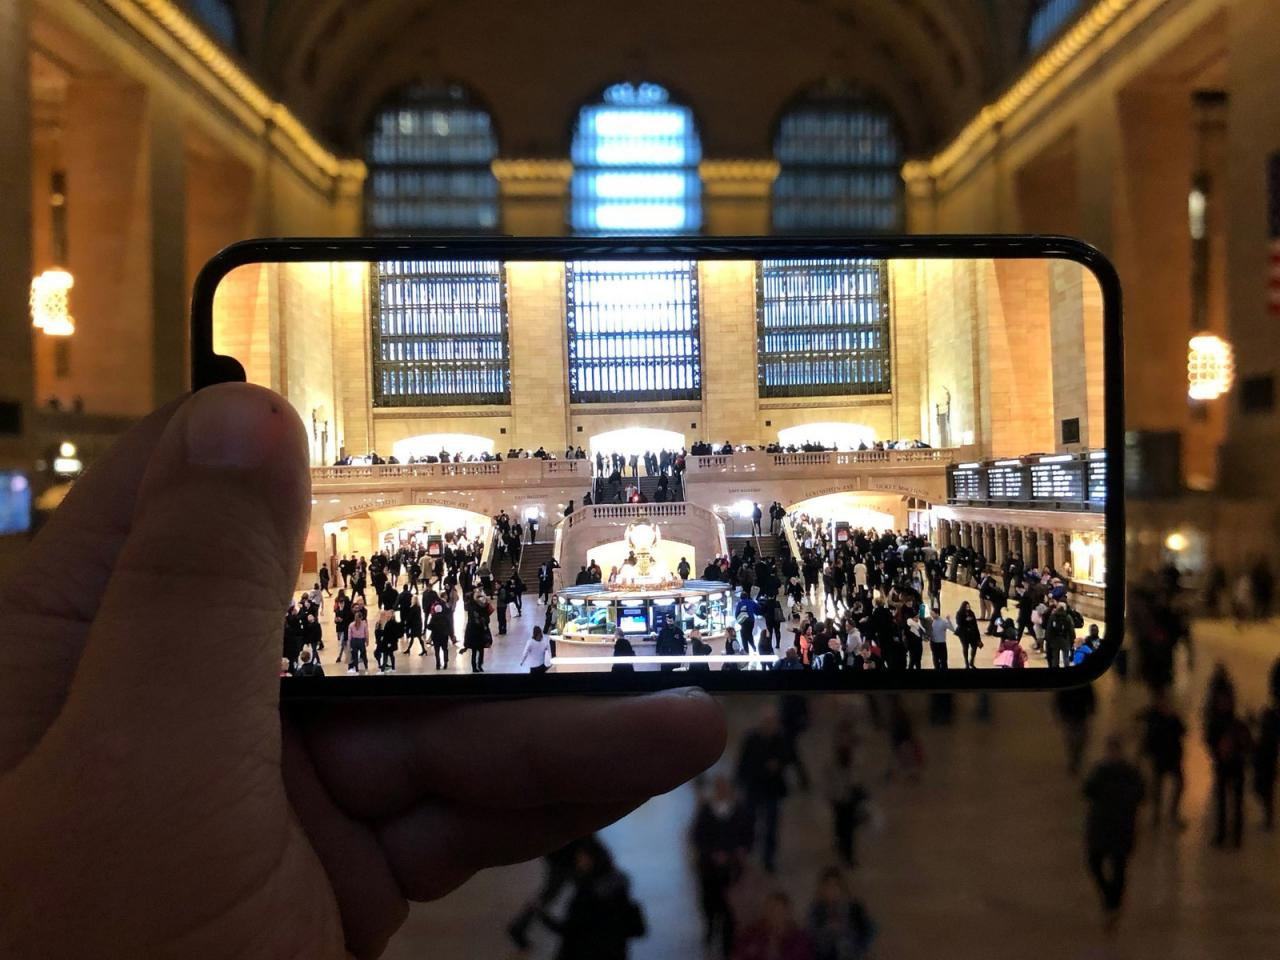 """iPhone X相机""""width =""""1600""""height =""""1200""""srcset =""""https://o0o0sm3y25-flywheel.netdna-ssl.com/wp-content/uploads/2018/02/iphone-x-grand-central.jpg 1600w,https://oo0o0sm3y25-flywheel.netdna-ssl.com/wp-content/uploads/2018/02/iphone-x-grand-central-300x225.jpg 300w,https://o0o0sm3y25-flywheel.netdna-ssl .com / wp-content / uploads / 2018/02 / iphone-x-grand-central-768x576.jpg 768w,https://oo0o0sm3y25-flywheel.netdna-ssl.com/wp-content/uploads/2018/02/ iphone-x-grand-central-1024x768.jpg 1024w,https://oo0o0sm3y25-flywheel.netdna-ssl.com/wp-content/uploads/2018/02/iphone-x-grand-central-80x60.jpg 80w, https://o0o0sm3y25-flywheel.netdna-ssl.com/wp-content/uploads/2018/02/iphone-x-grand-central-265x198.jpg 265w,https://oo0o0sm3y25-flywheel.netdna-ssl.com /wp-content/uploads/2018/02/iphone-x-grand-central-696x522.jpg 696w,https://oo0o0sm3y25-flywheel.netdna-ssl.com/wp-content/uploads/2018/02/iphone- x-grand-central-1068x801.jpg 1068w,https://oo0o0sm 3y25-flywheel.netdna-ssl.com/wp-content/uploads/2018 /02/iphone-x-grand-central-560x420.jpg 560w""""sizes =""""(最大宽度:1600px)100vw,1600px"""